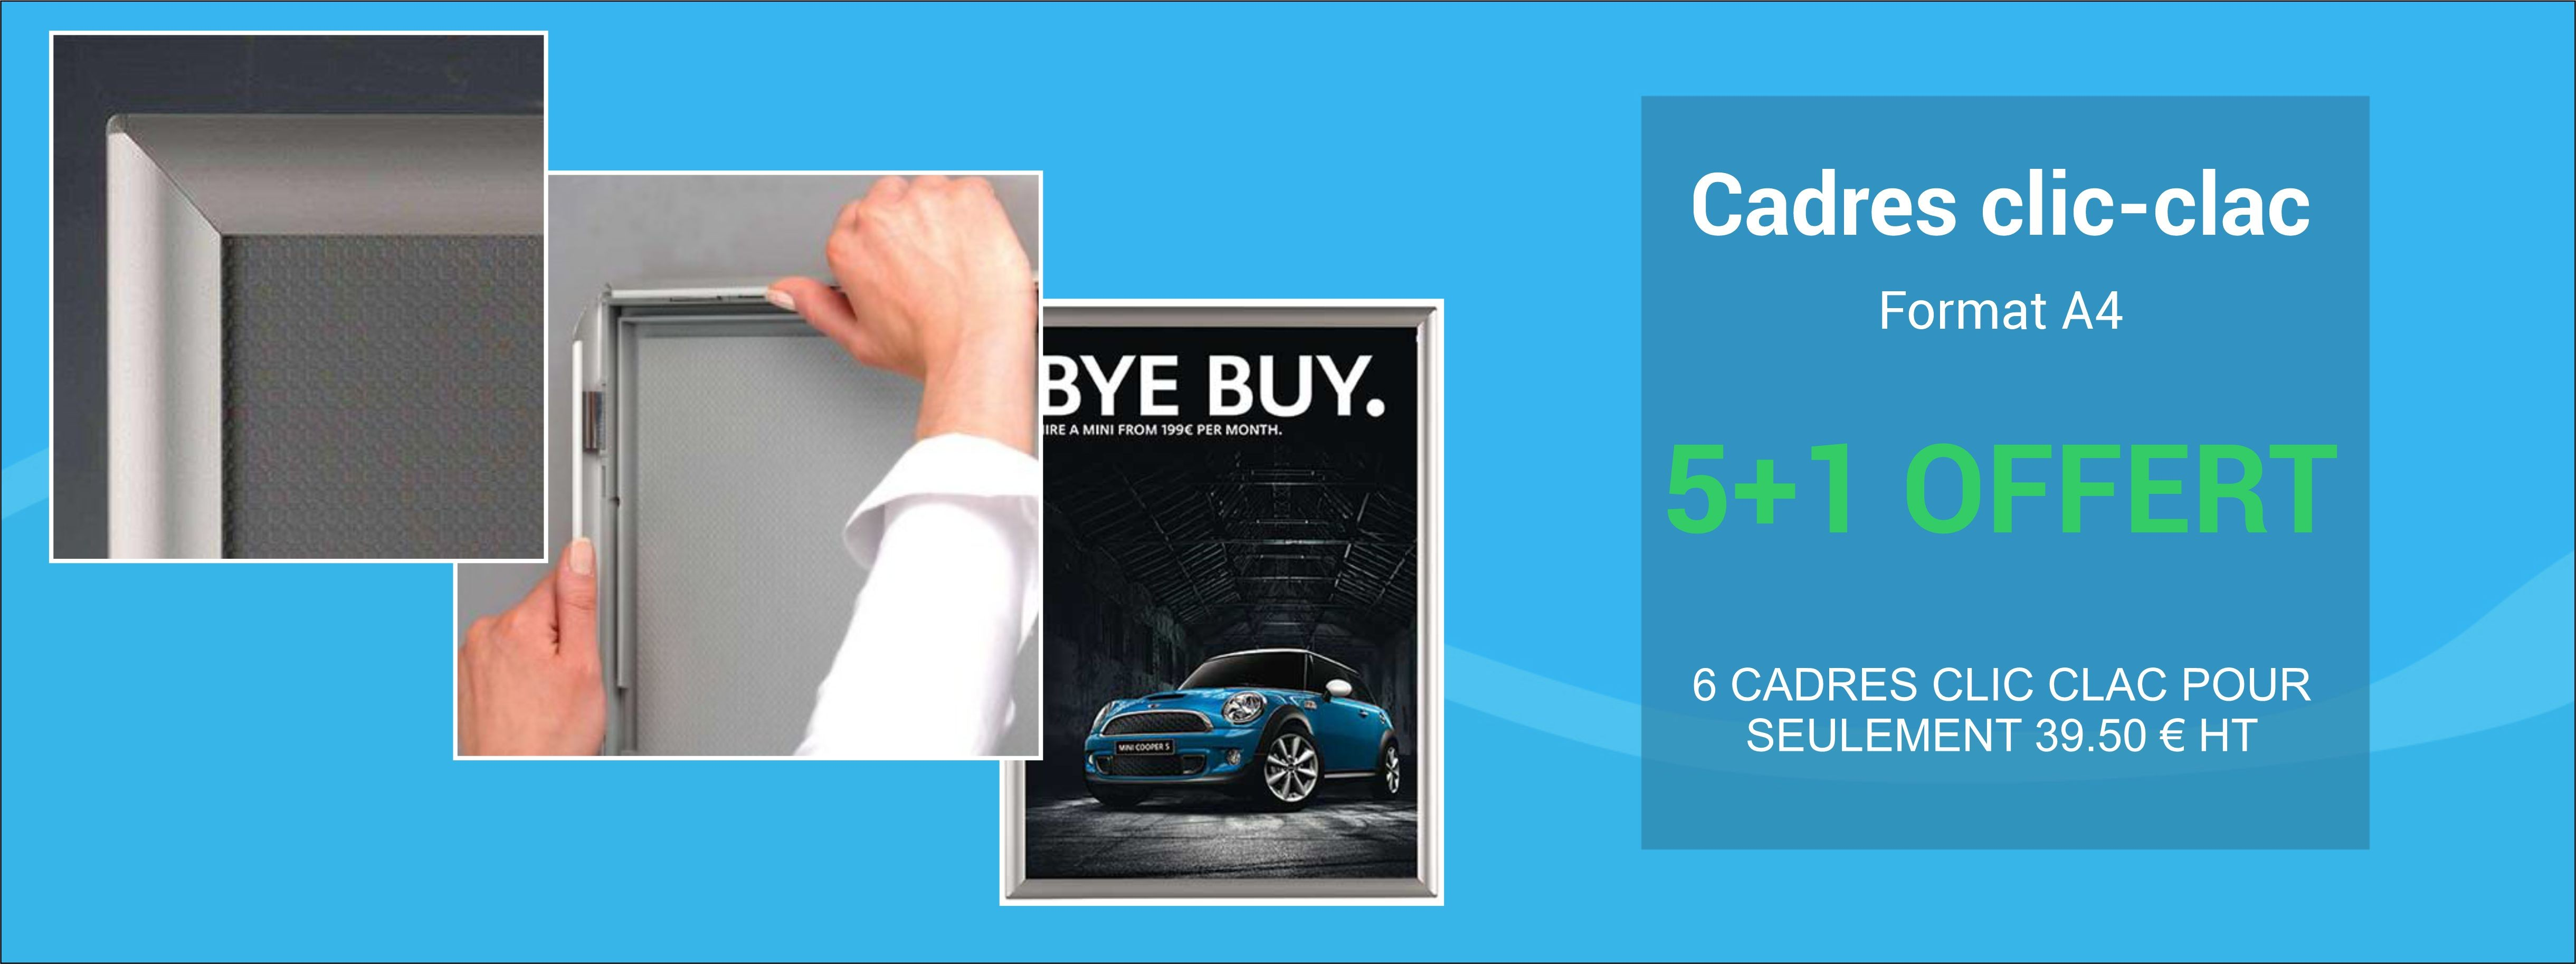 Promotion cadres clic-clac - 5+1 offert